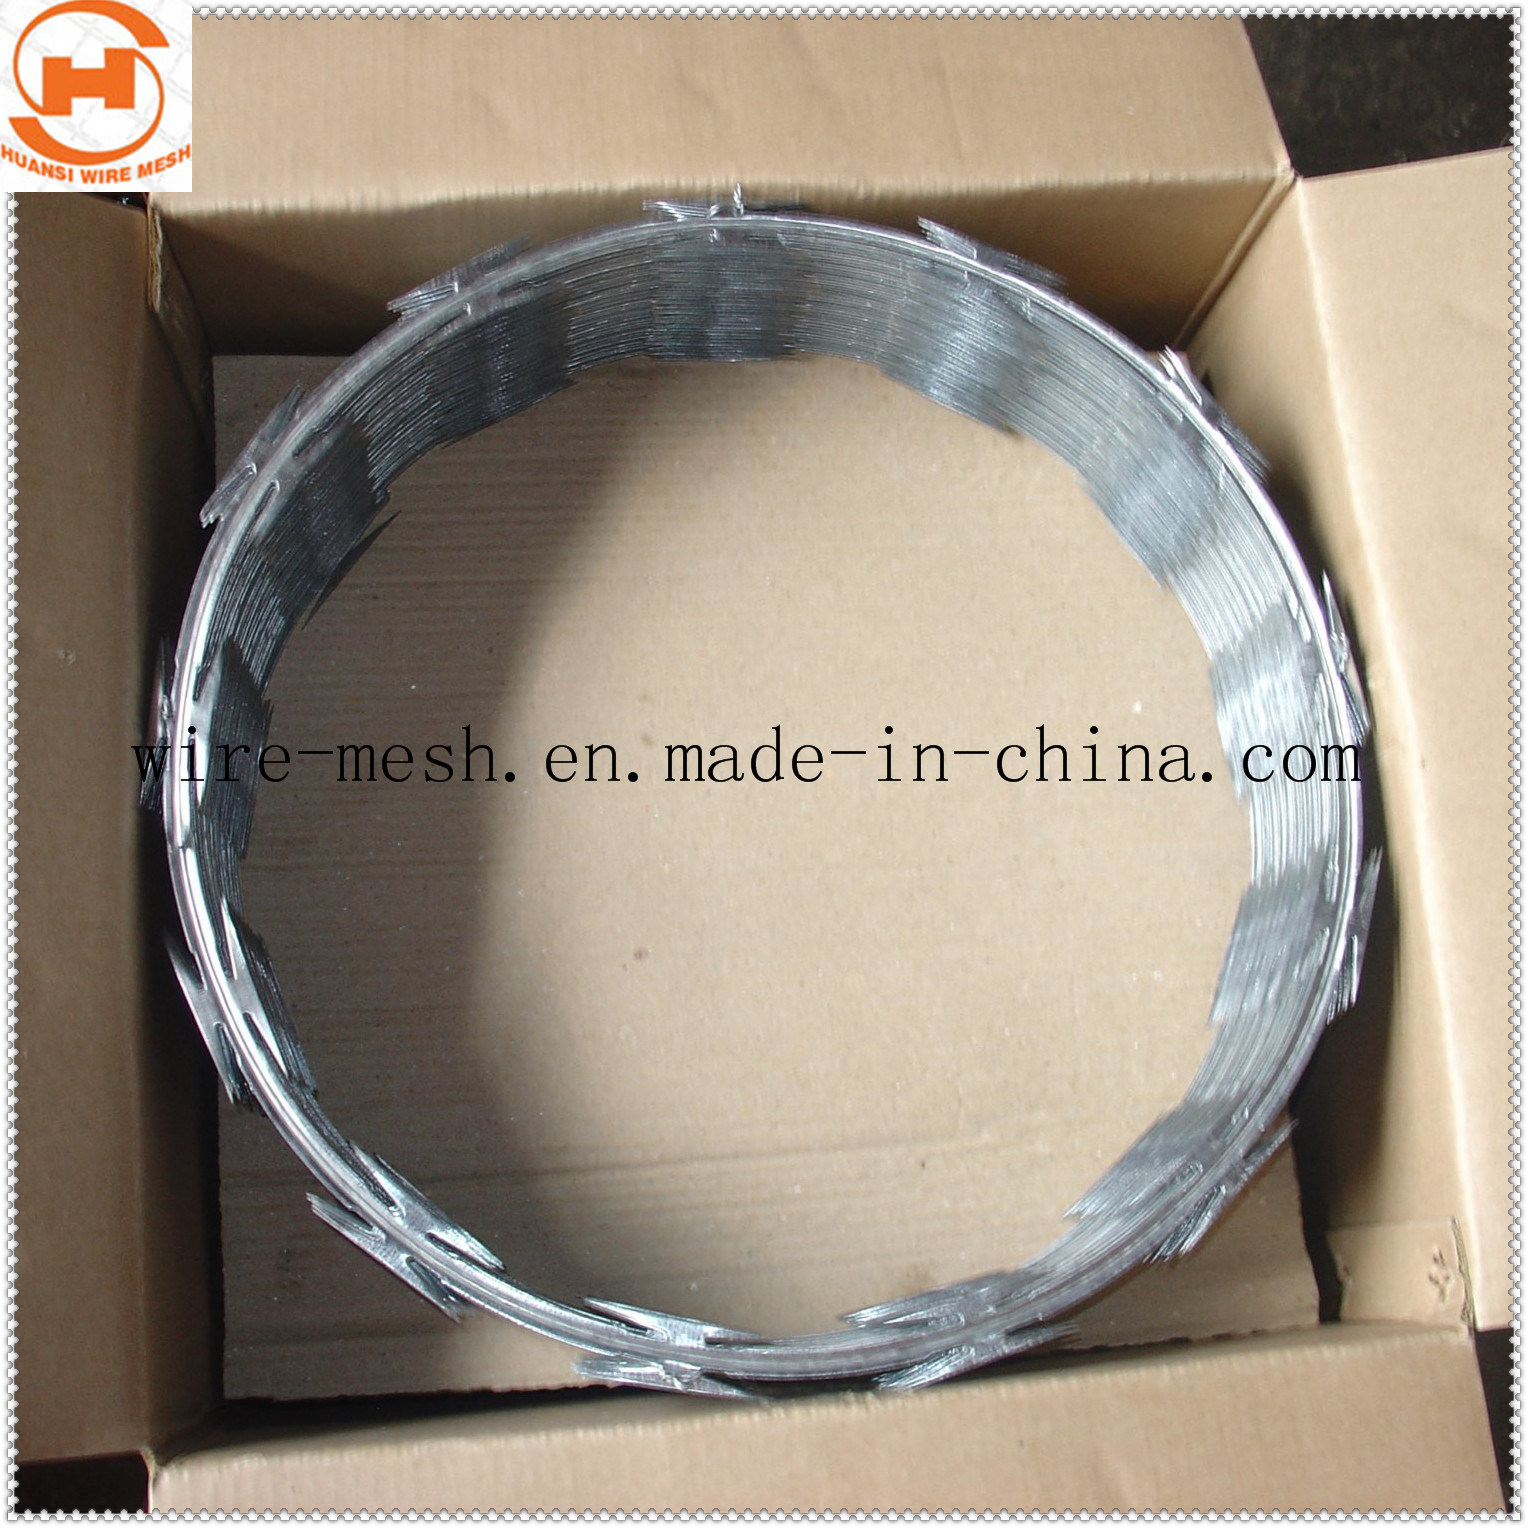 China Cbt-65 Without Clip Concertina Razor Wire - China Concertina ...